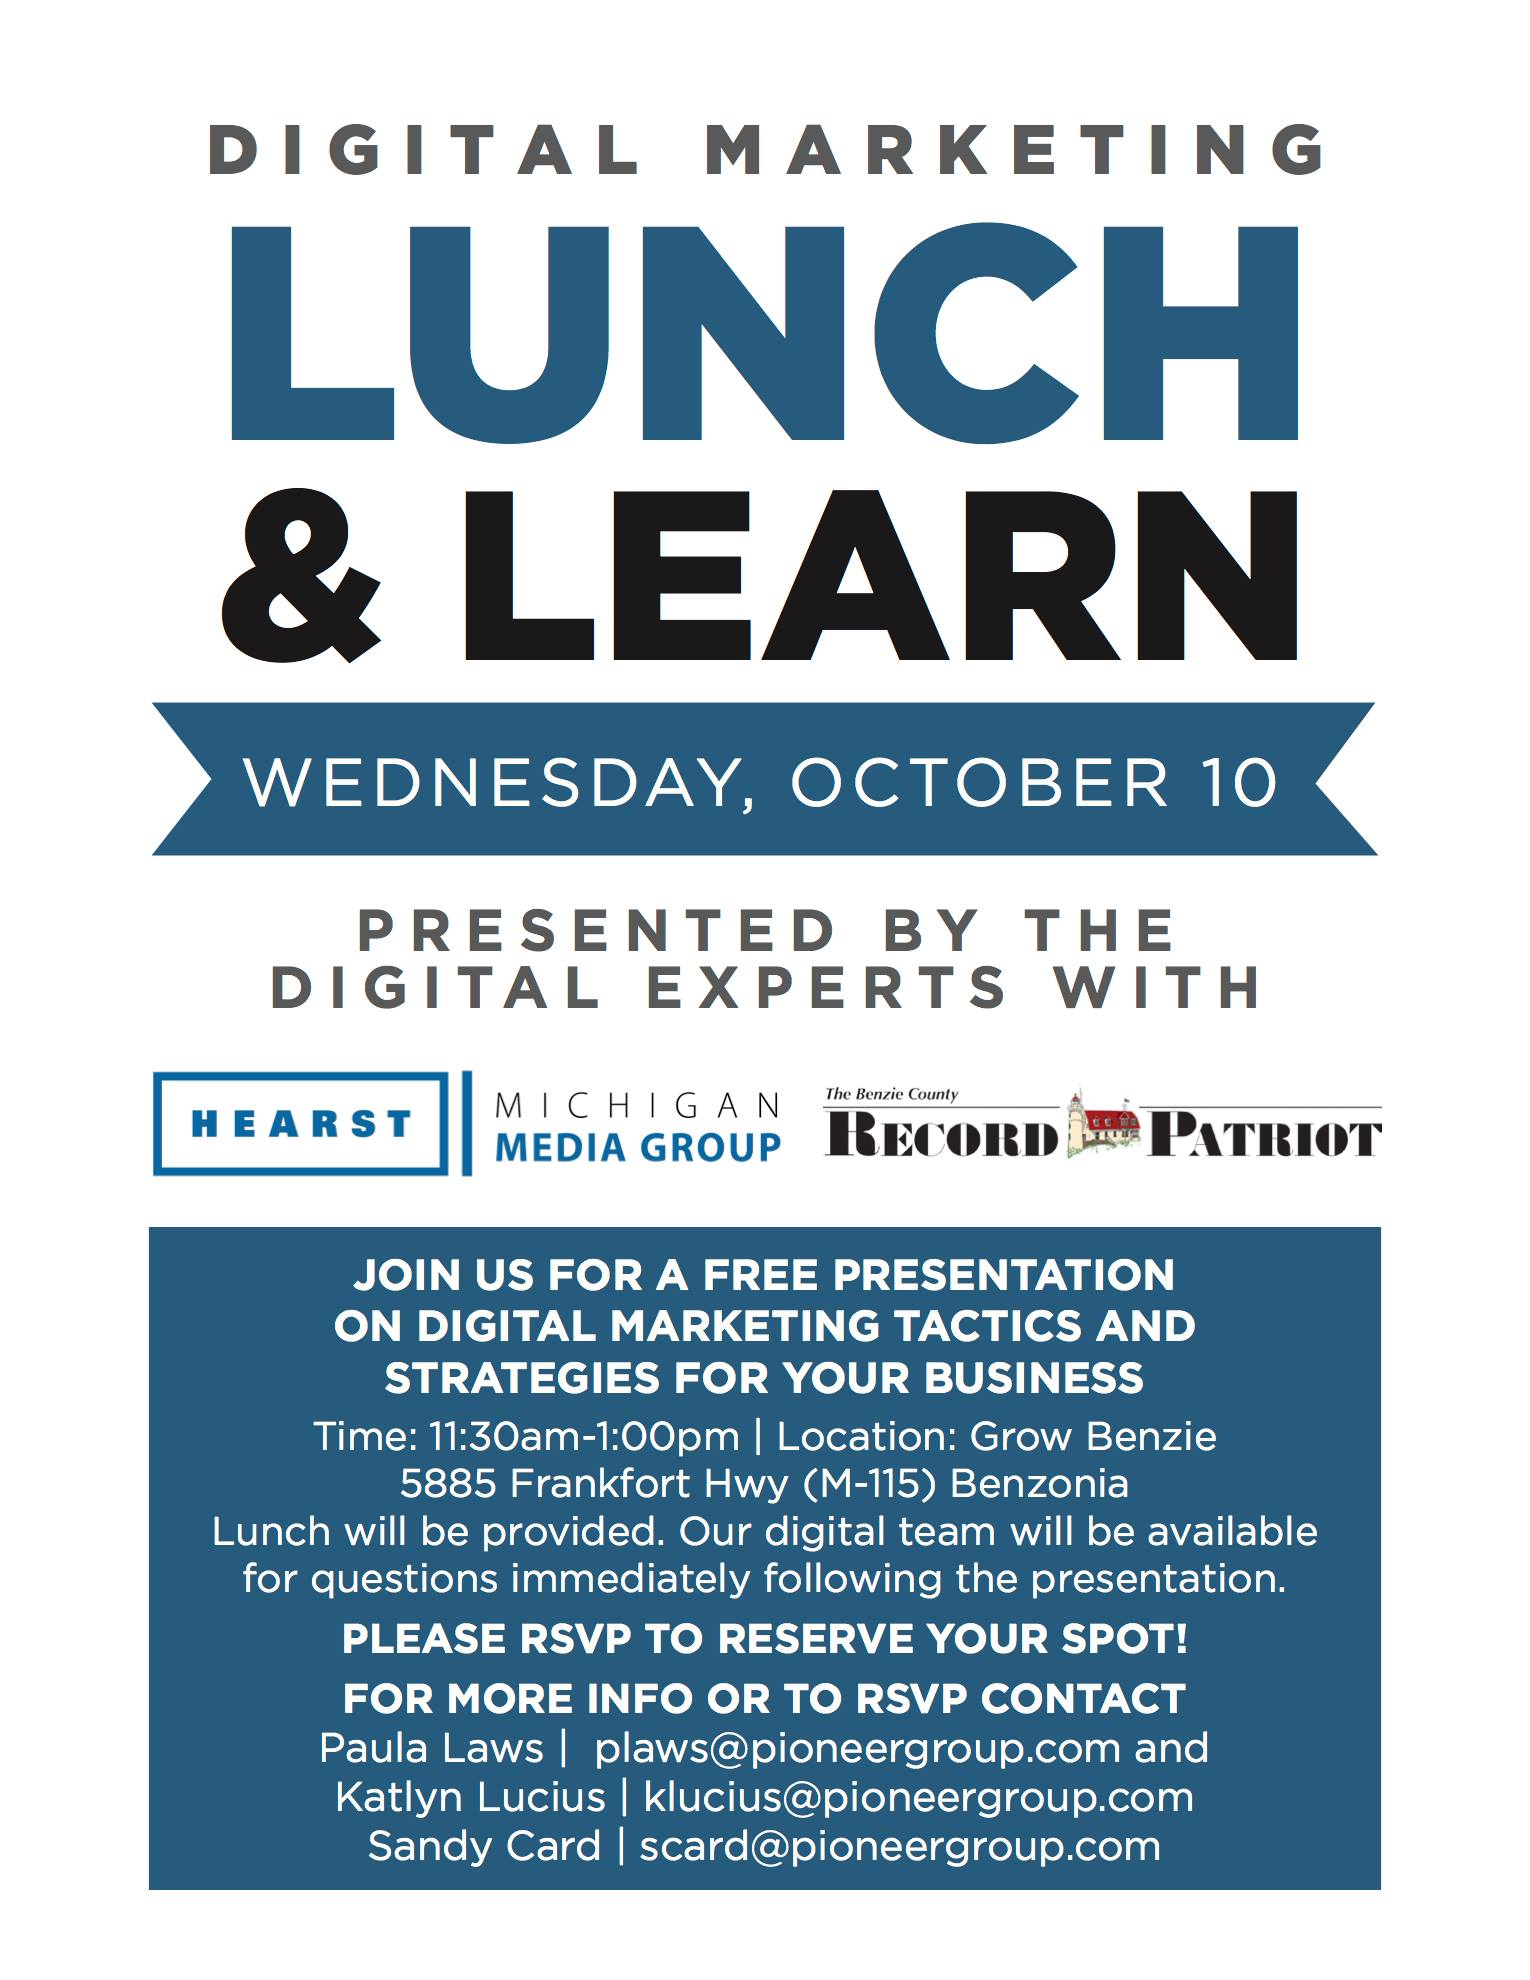 """WHAT? Learn about the current climate of digital marketing and how it affects your business. Get a better understanding of new strategies and how to """"break through the noise"""" online. Learn tactics and recommendations from Josh Wilson, a digital marketing specialist that has over a decade of experience.  WHEN? Wednesday, October 10th 11:30am-1pm  WHO? Everyone is welcome. Please RSVP: Paula Laws, plaws@pioneergroup.com Katlyn Lucius, klucius@pioneergroup.com Sandy Card, scard@pioneergroup.com   HOW MUCH? Free.  Lunch is included, please RSVP to help w/planning.  WHERE? Grow Benzie Event Center 5885 Frankfort Highway (M-115), Benzonia, 49616 *** 1 mile west of stoplight in Benzonia *** 5 miles east of Frankfort *** 20 miles west of Interlochen *** 30 miles north of Manistee  QUESTIONS and RSVP:  Paula Laws, plaws@pioneergroup.com Katlyn Lucius, klucius@pioneergroup.com Sandy Card, scard@pioneergroup.com"""